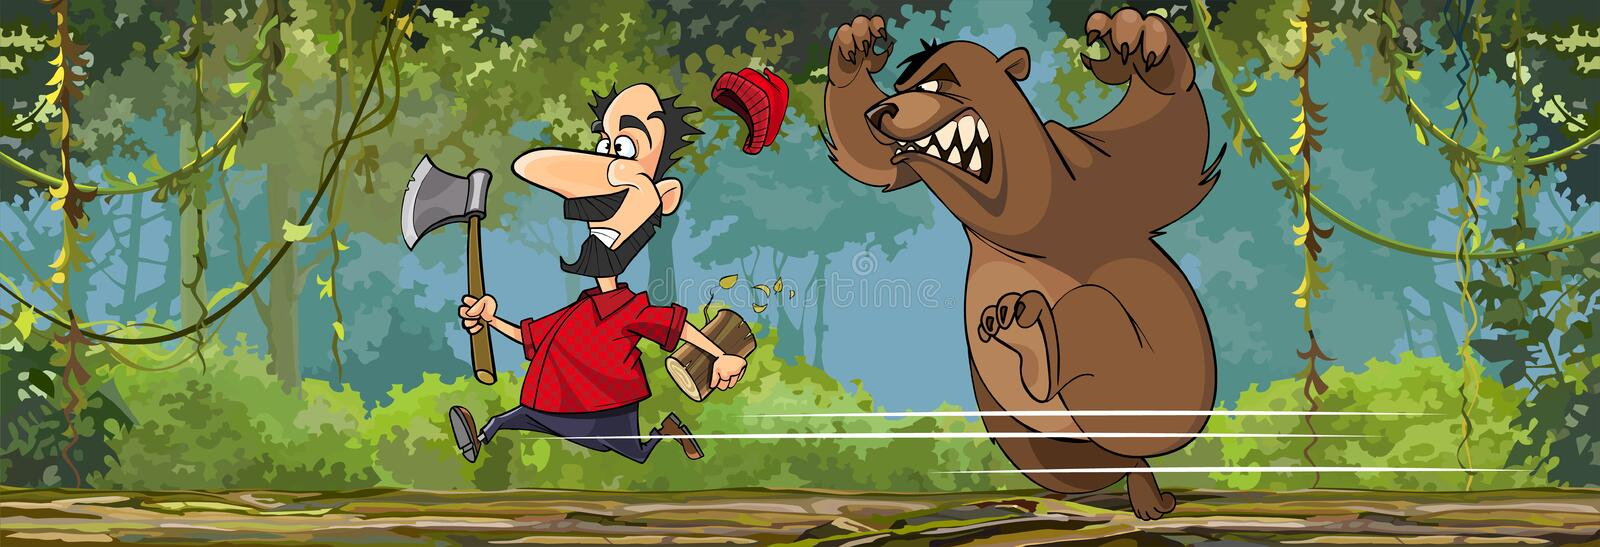 Cartoon lumberjack with an ax is running away from an angry bear stock illustration